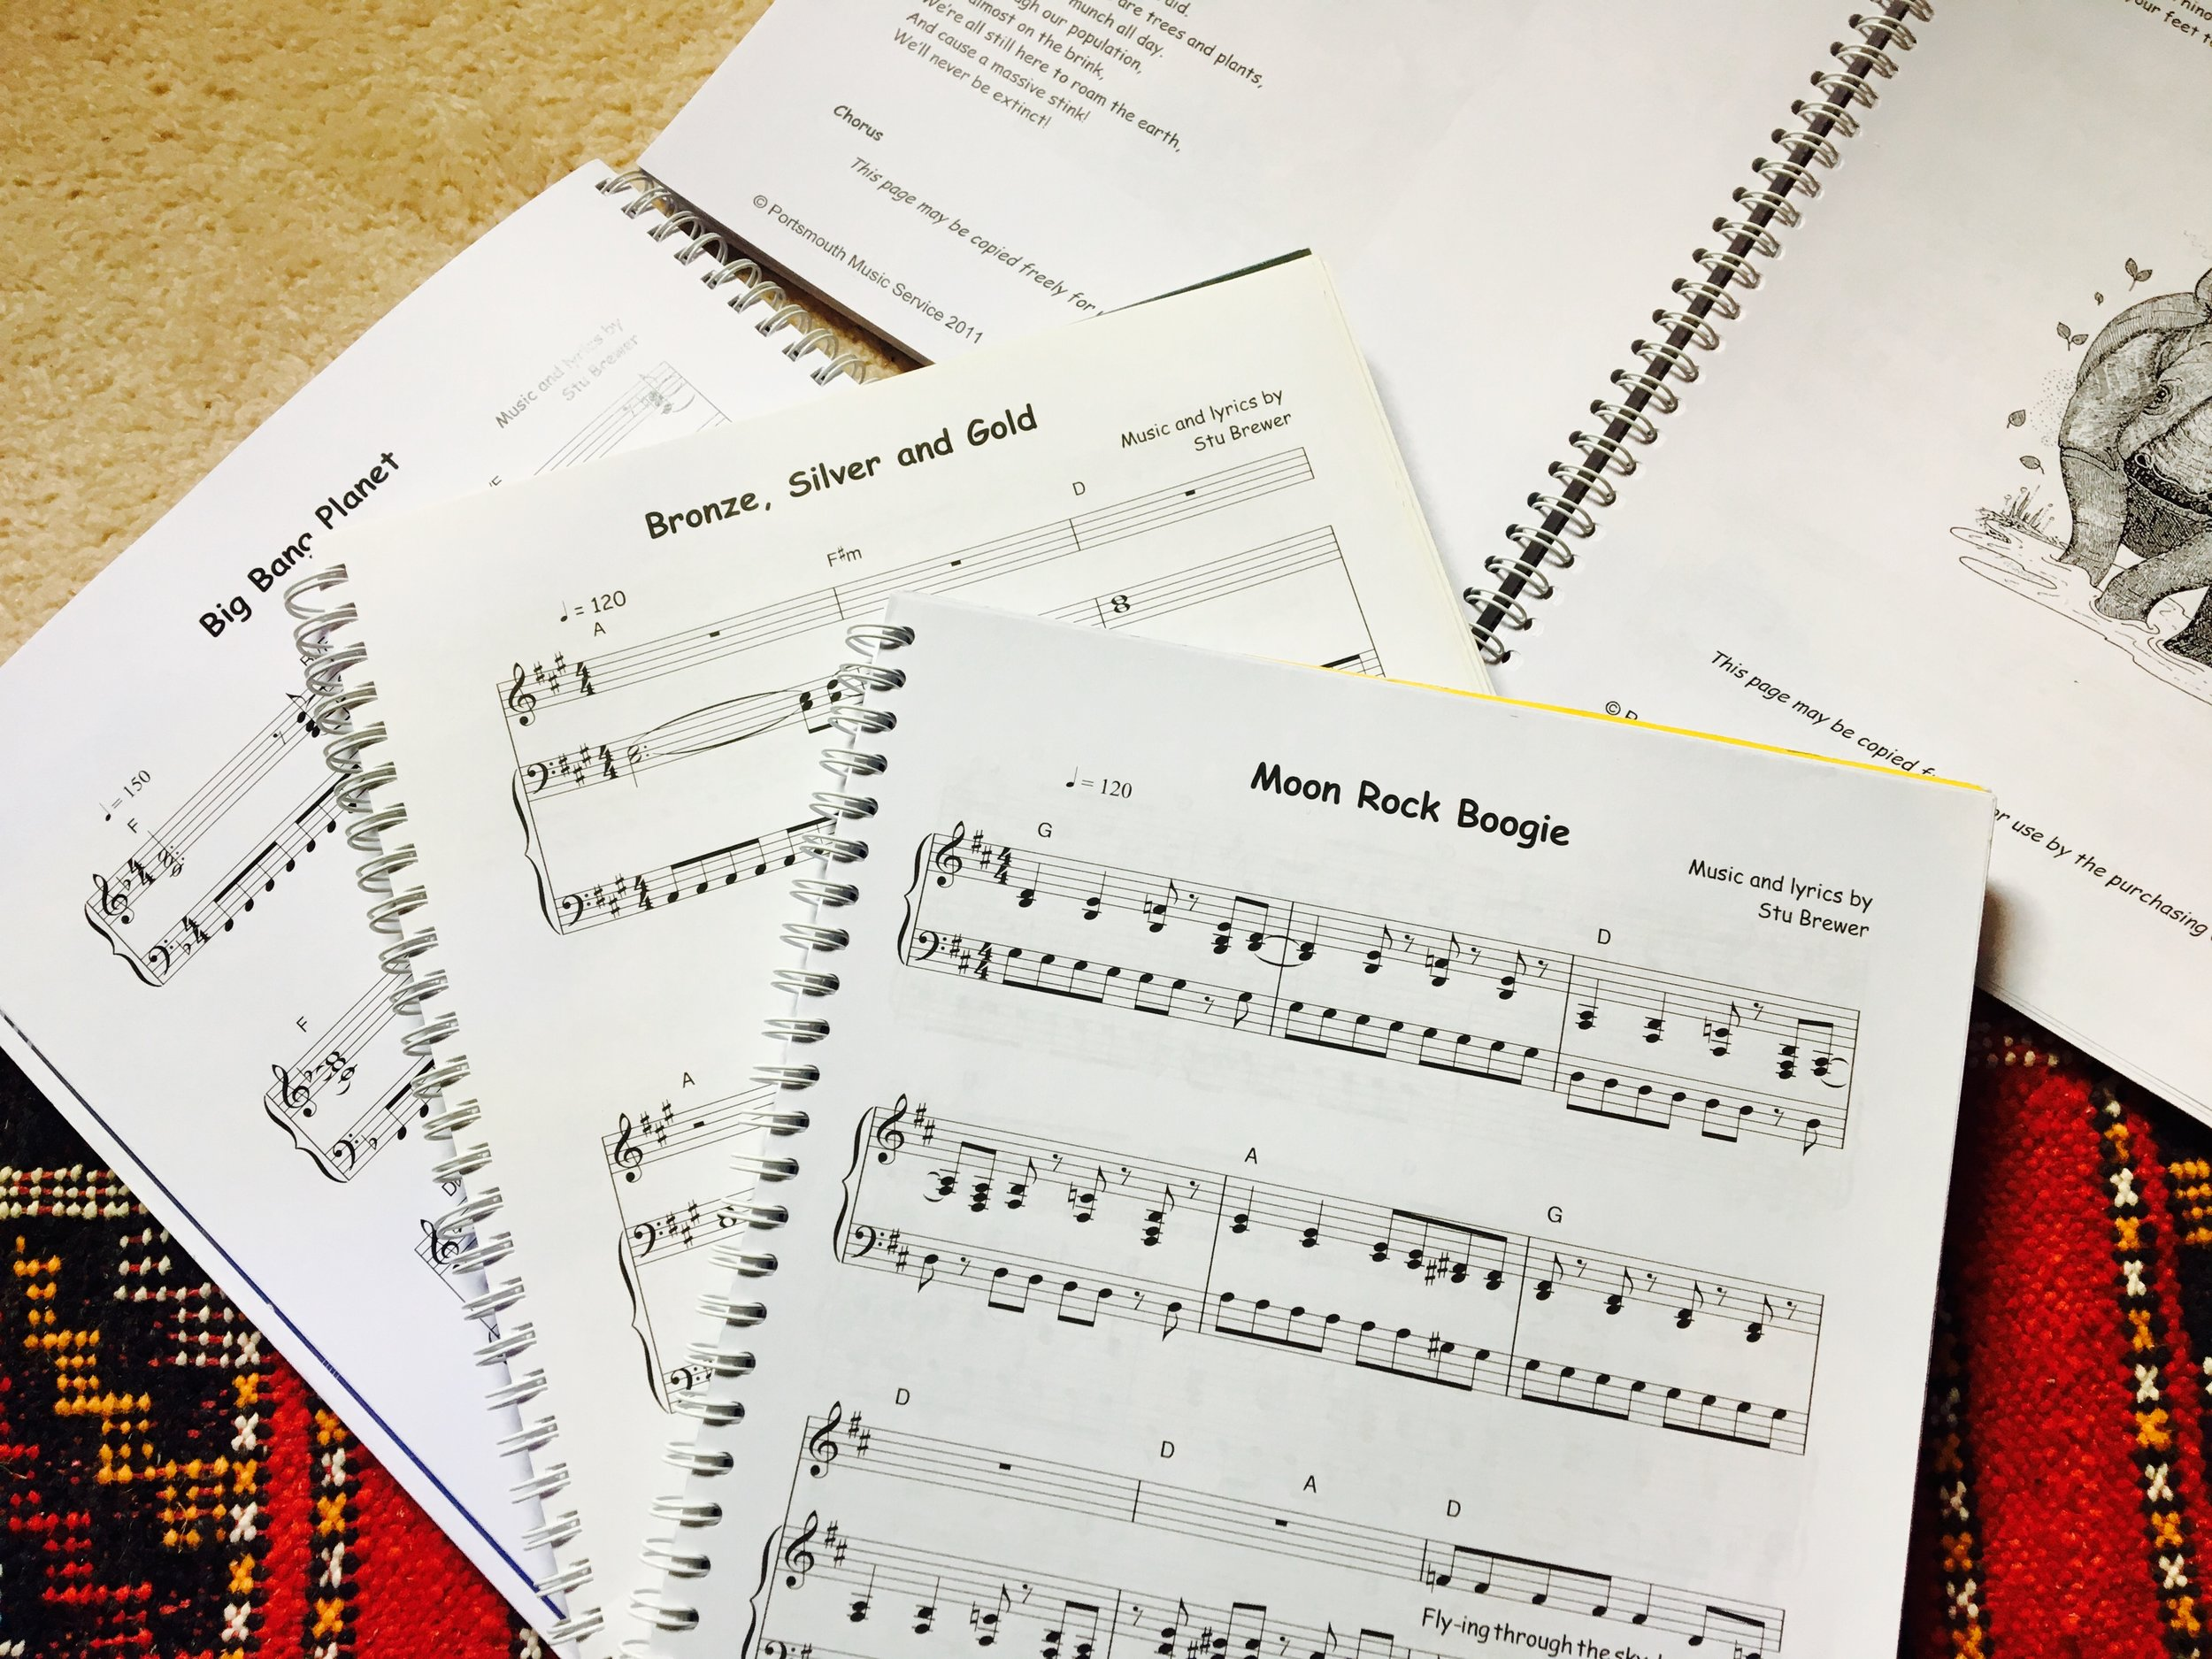 Some of my songs from the songbooks